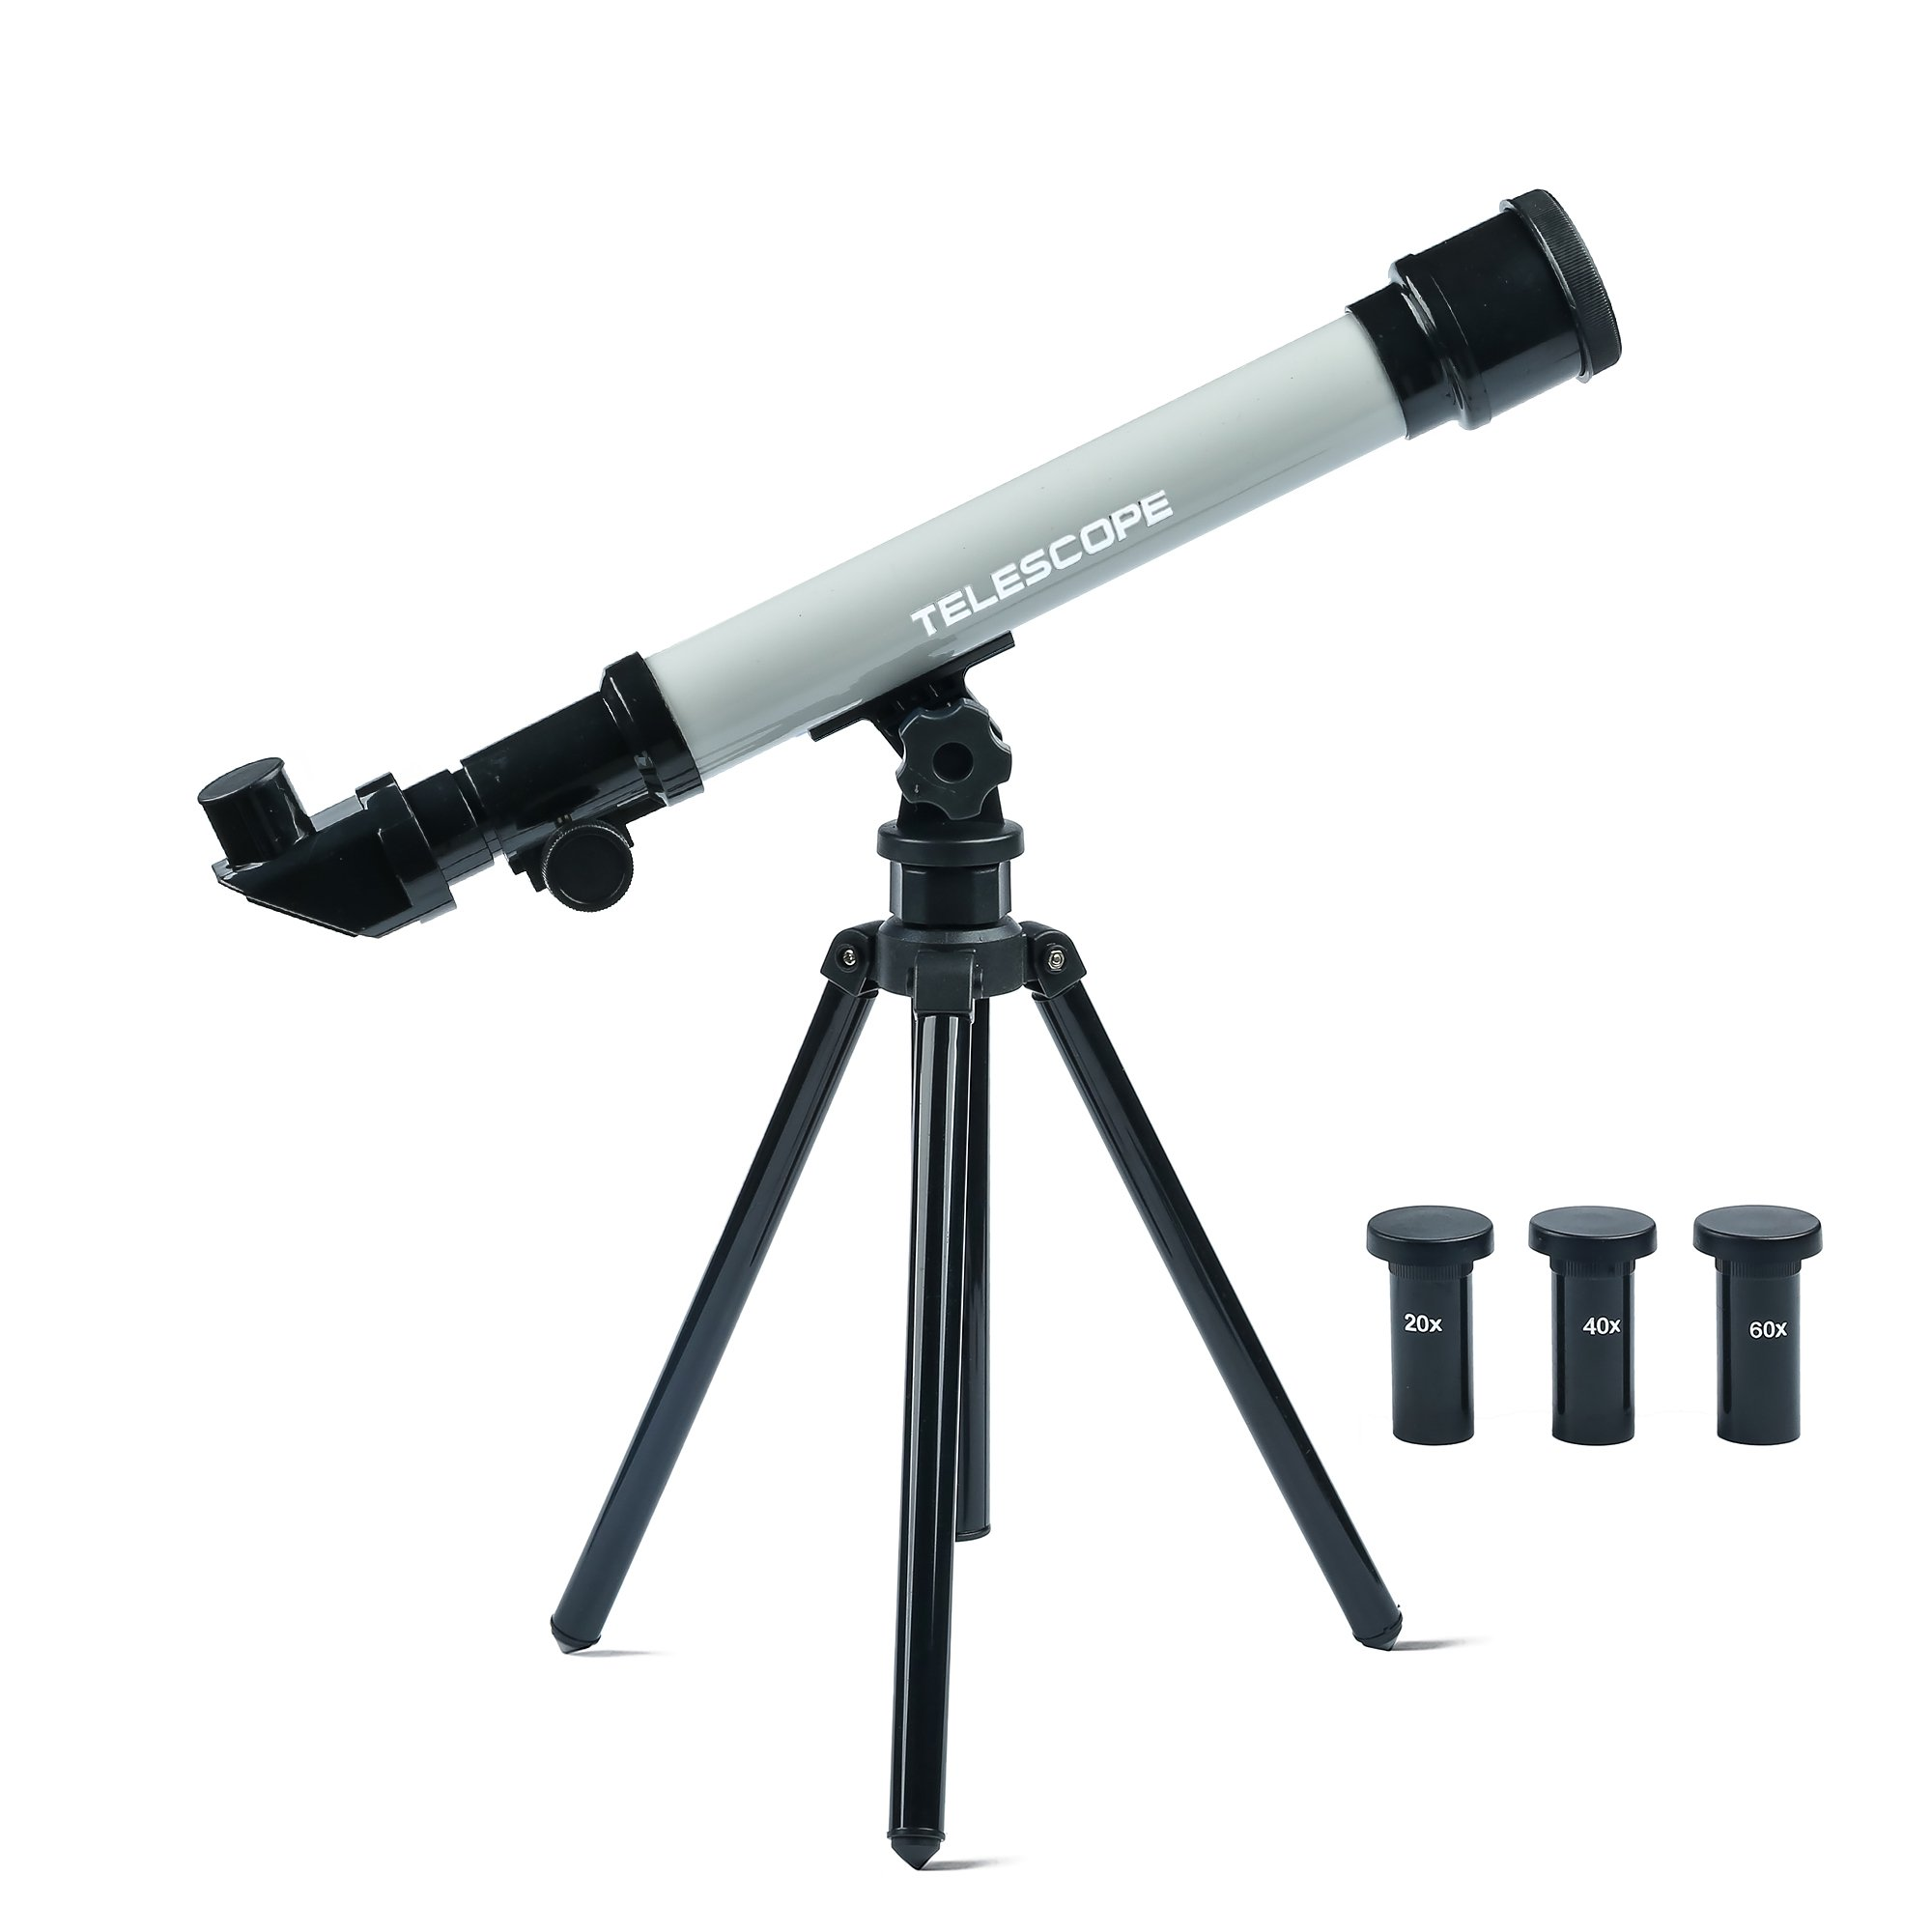 Youtop Educational Astronomical Telescope Toy Adjustable 20/40/60X Toddlers Starter Kit w/ Tripod Gray